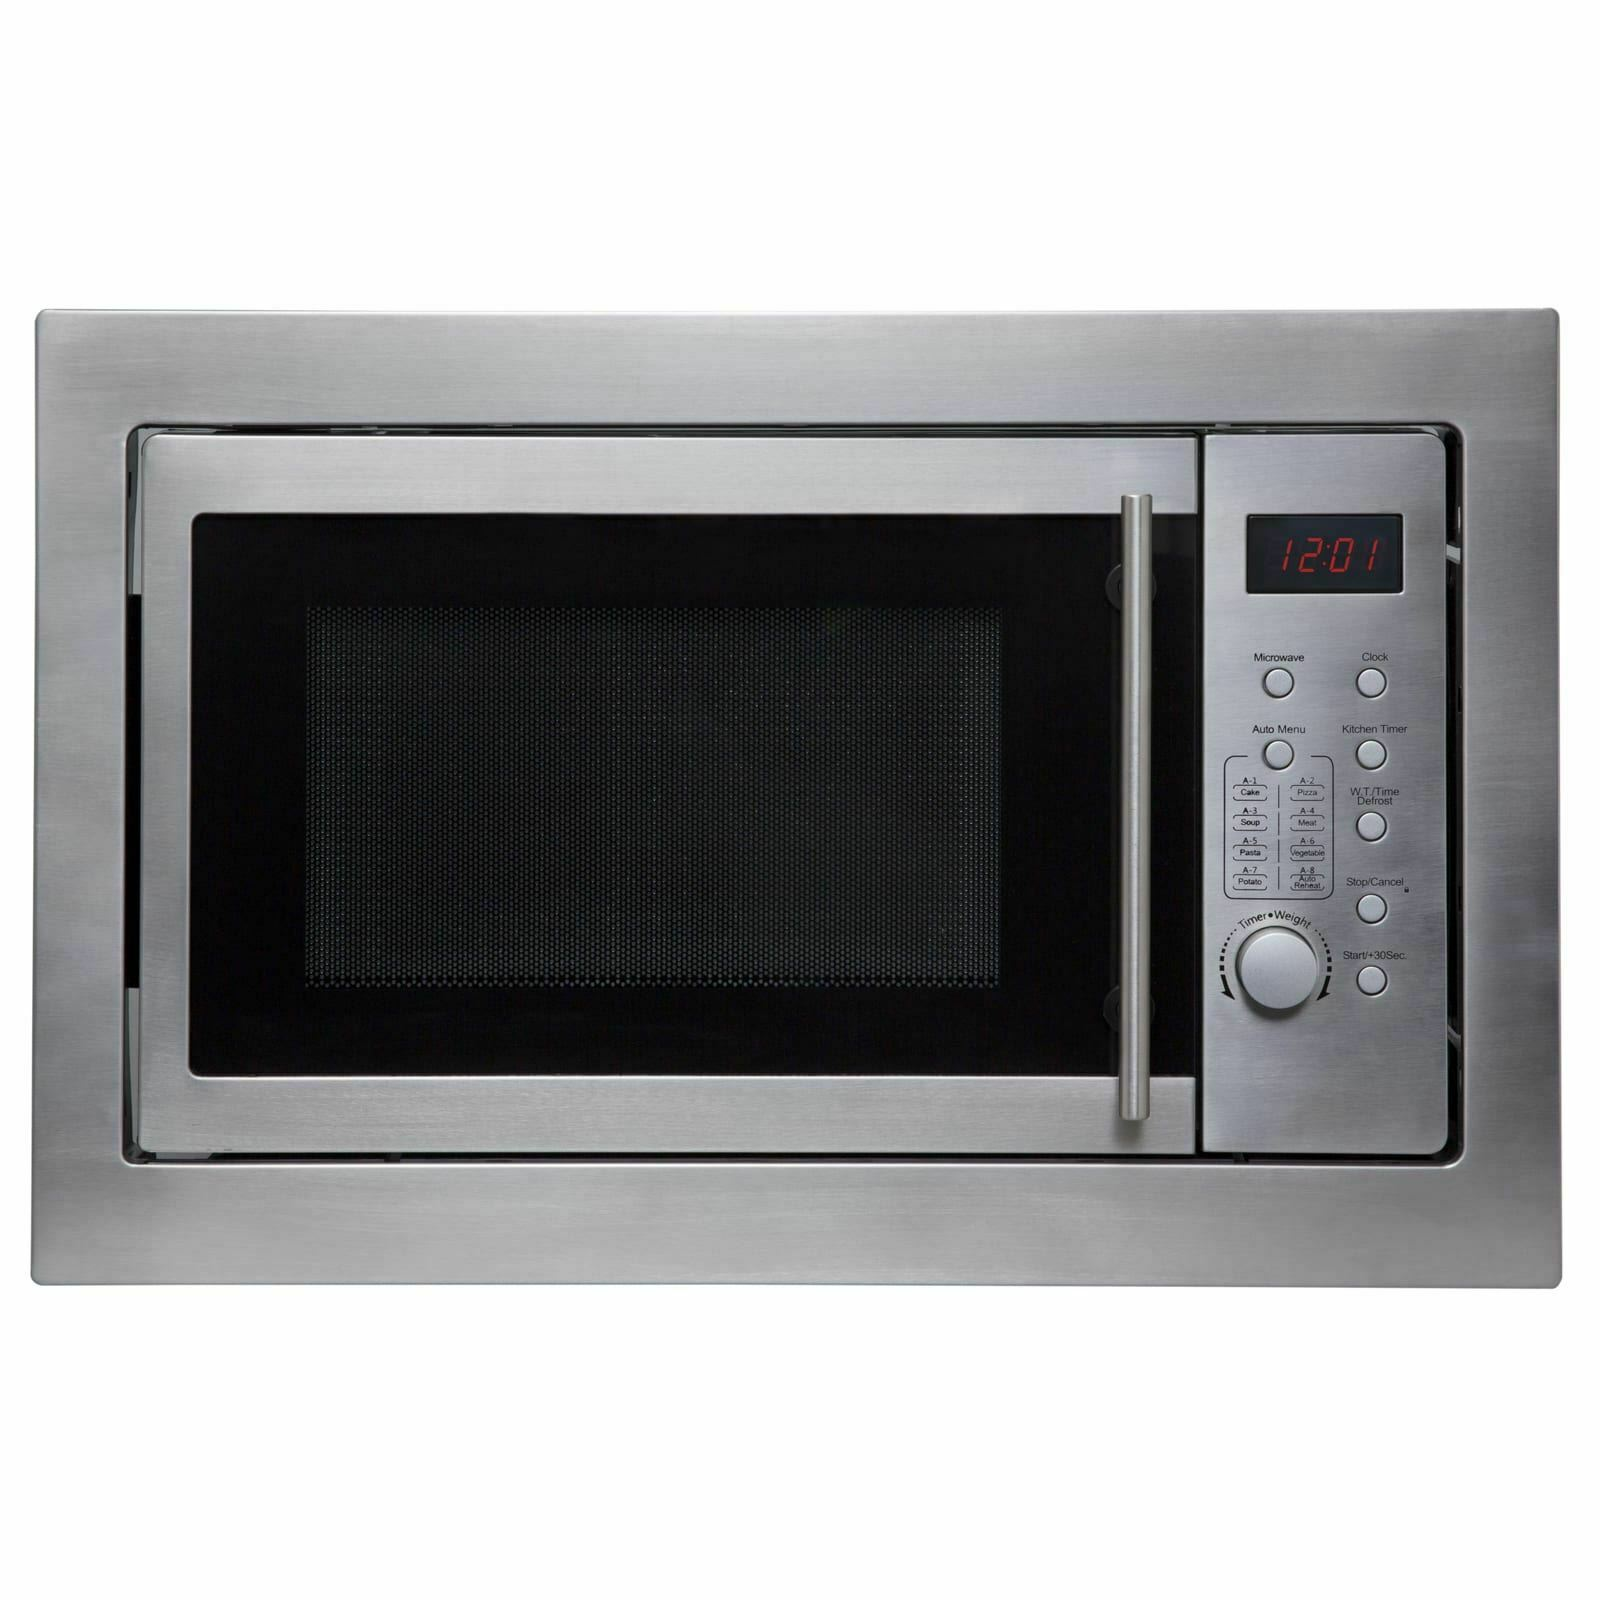 sia bim25ss stainless steel 25l 900w built in microwave oven